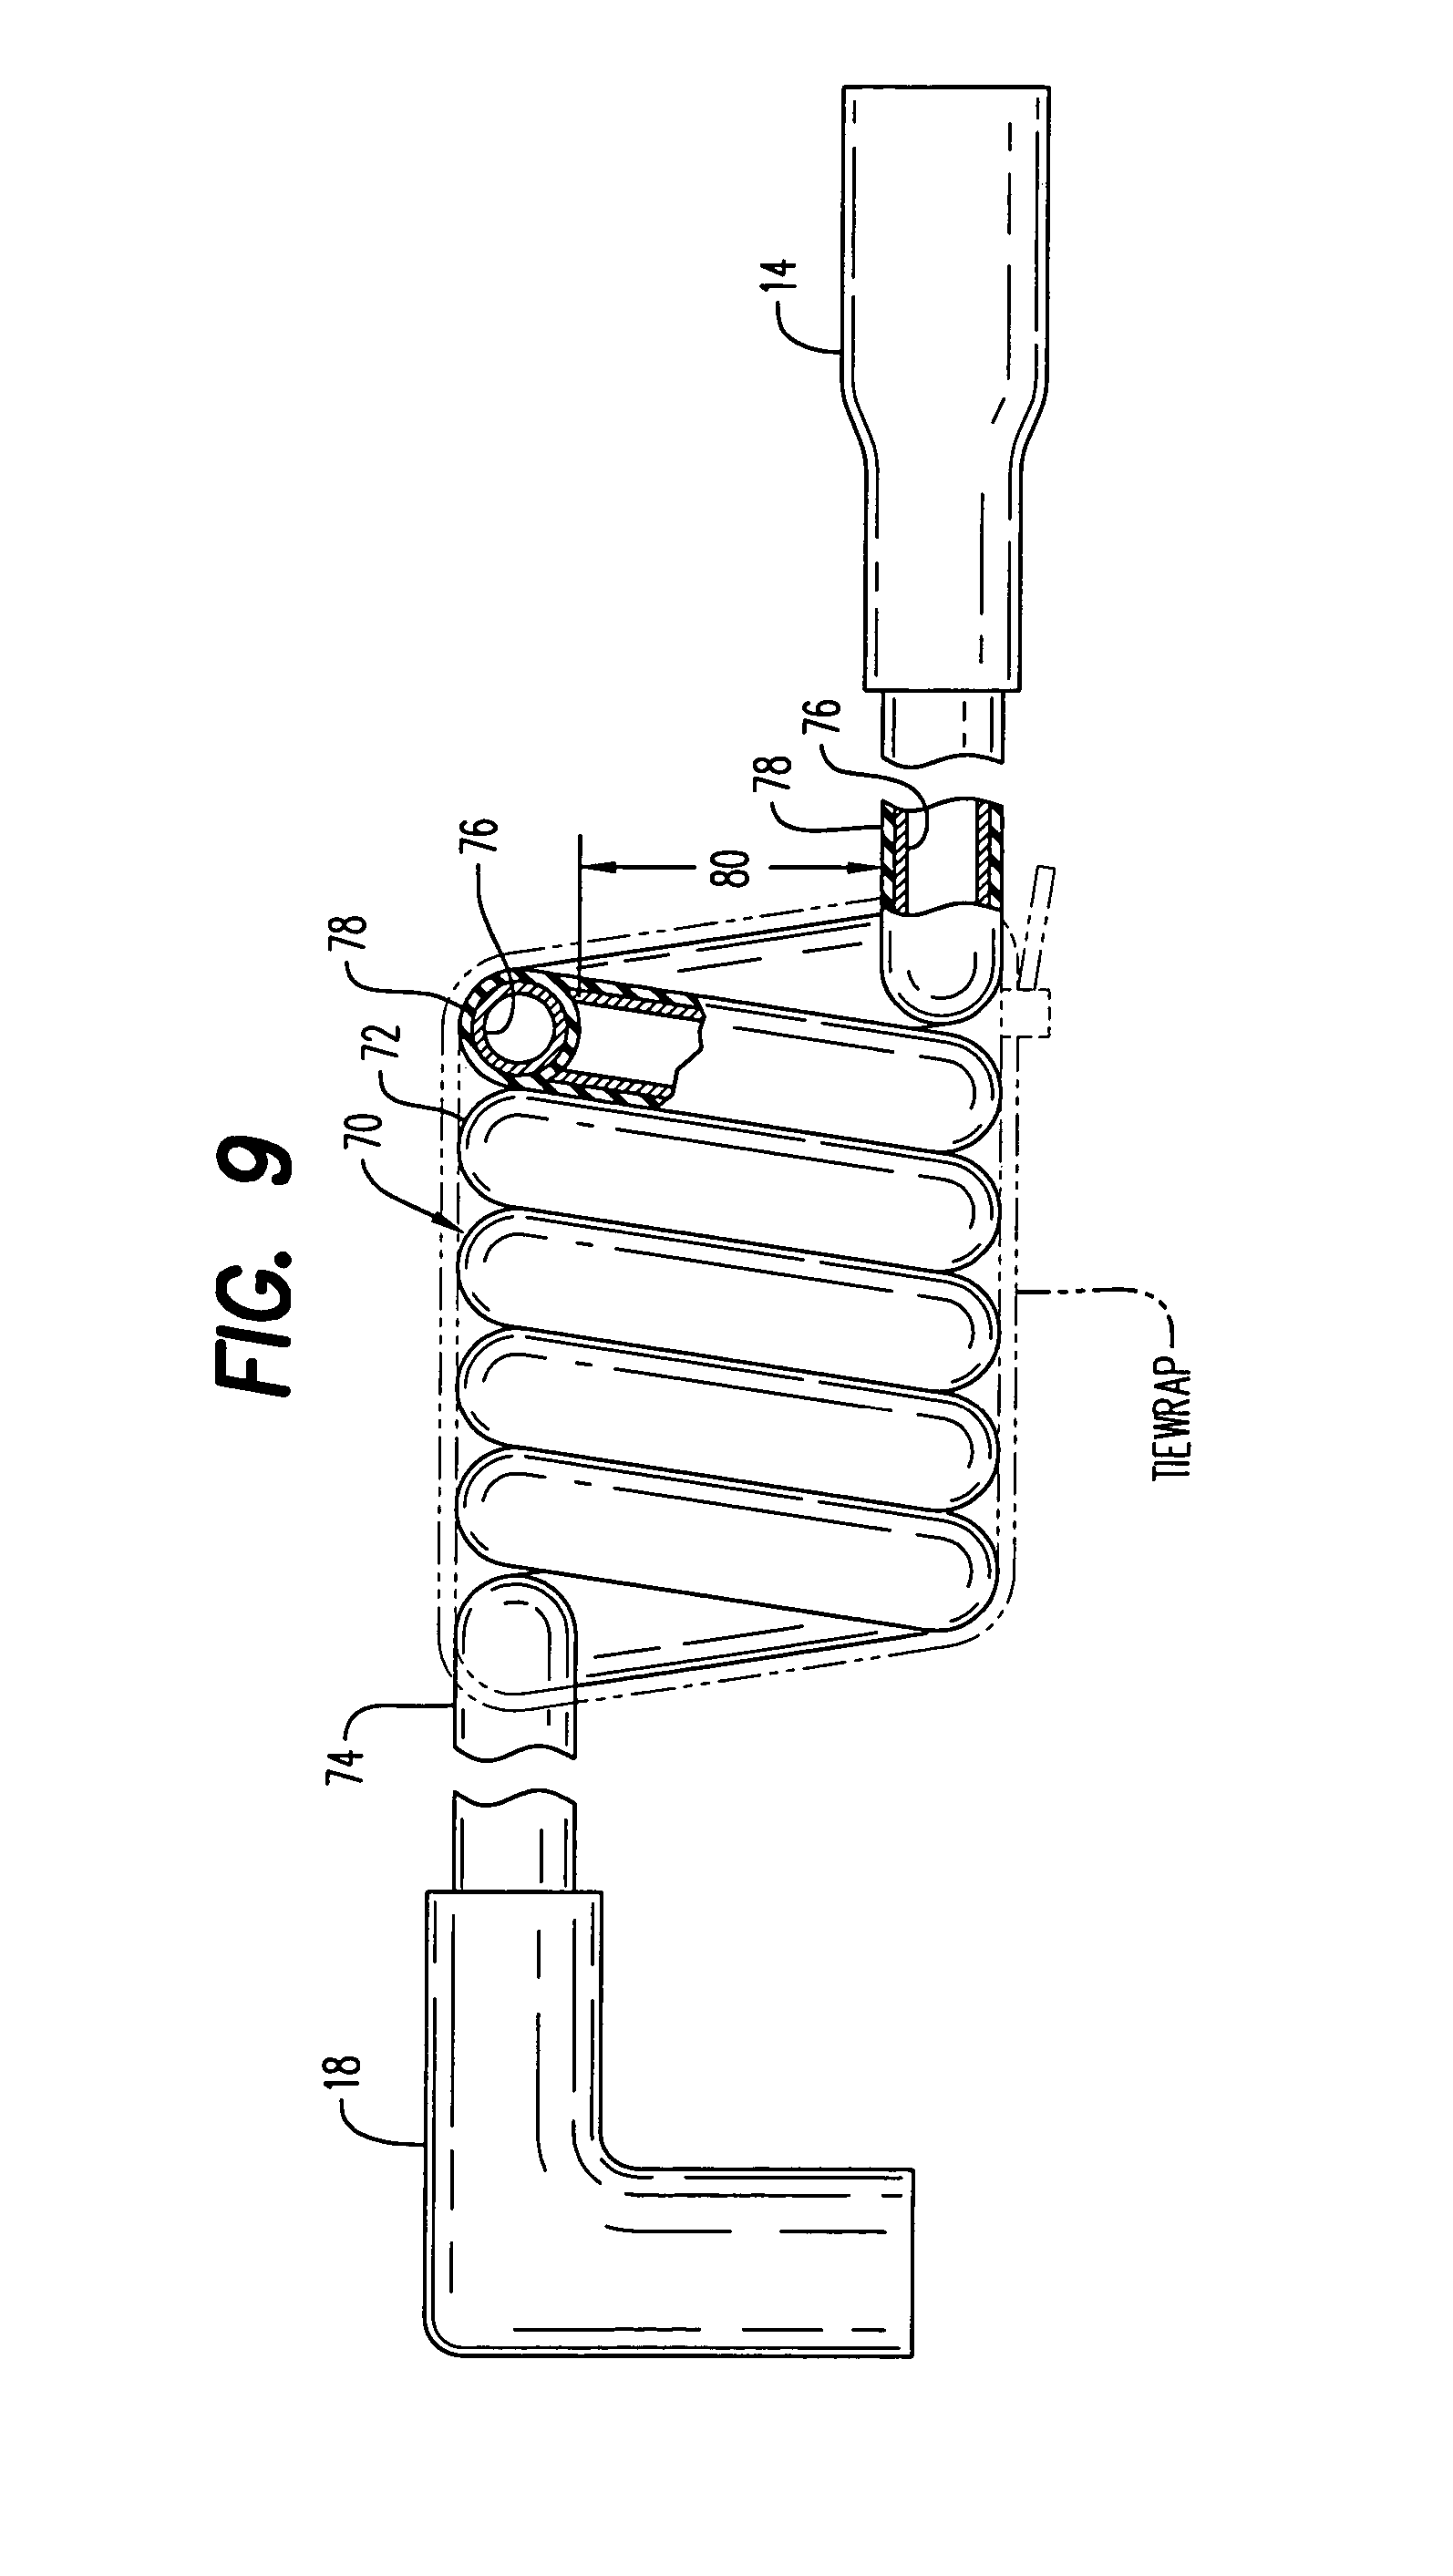 Brevet Us7051723 Ignition Spark Enhancing Device Google Brevets Still Stumped Time To Test The Coil Circuit Patent Drawing